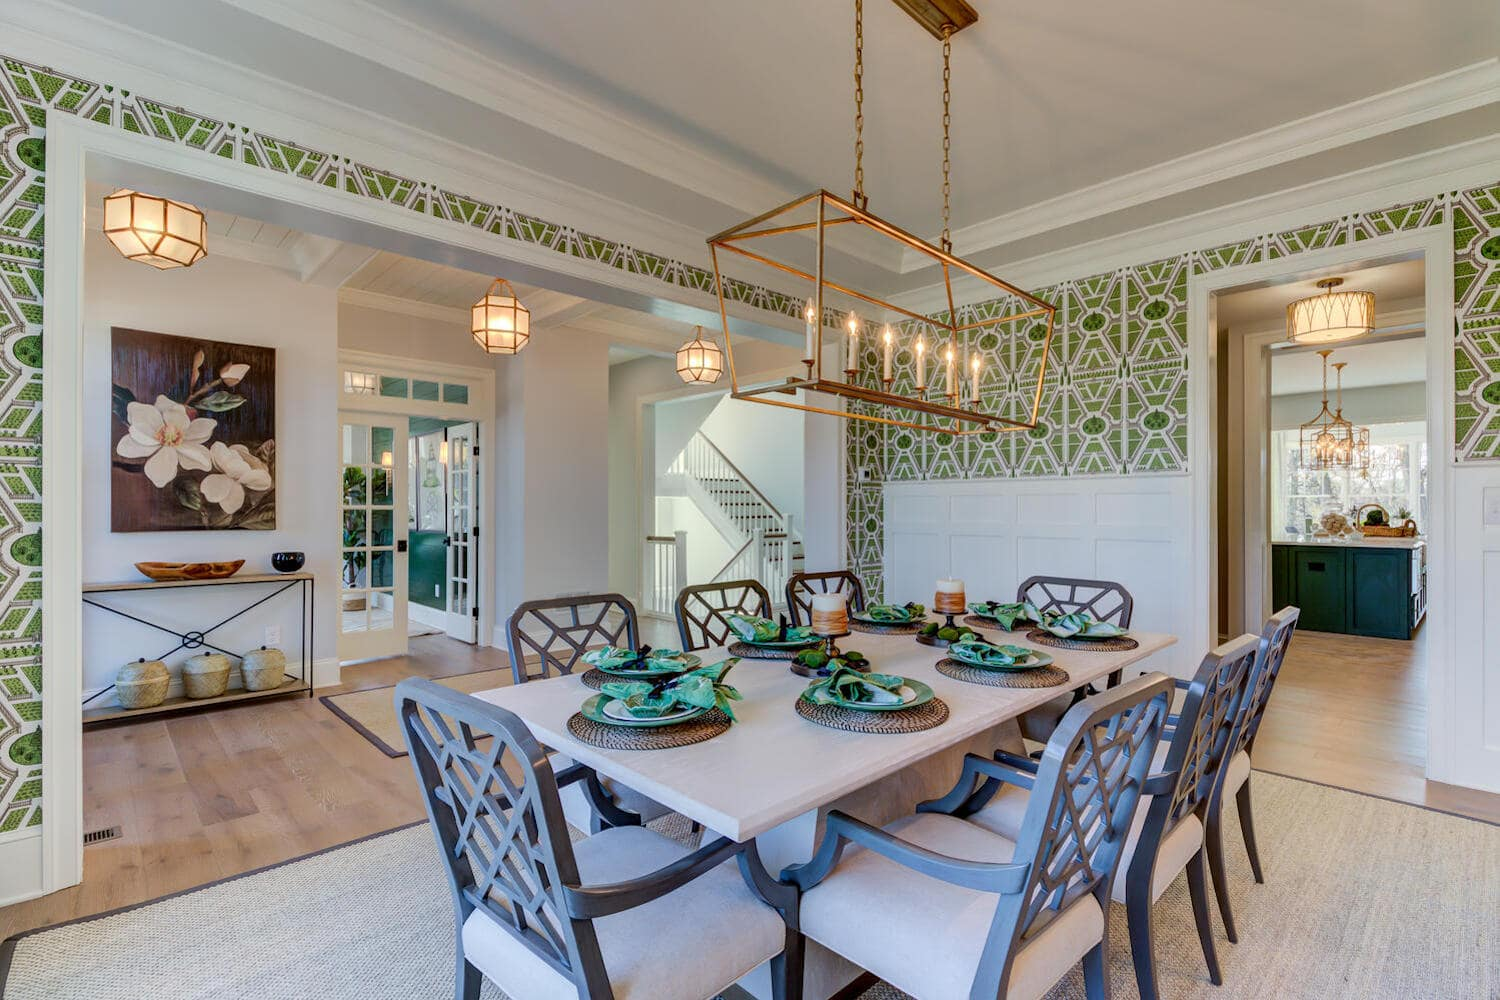 Dining room in a new home in Wayne from Bentley Homes.